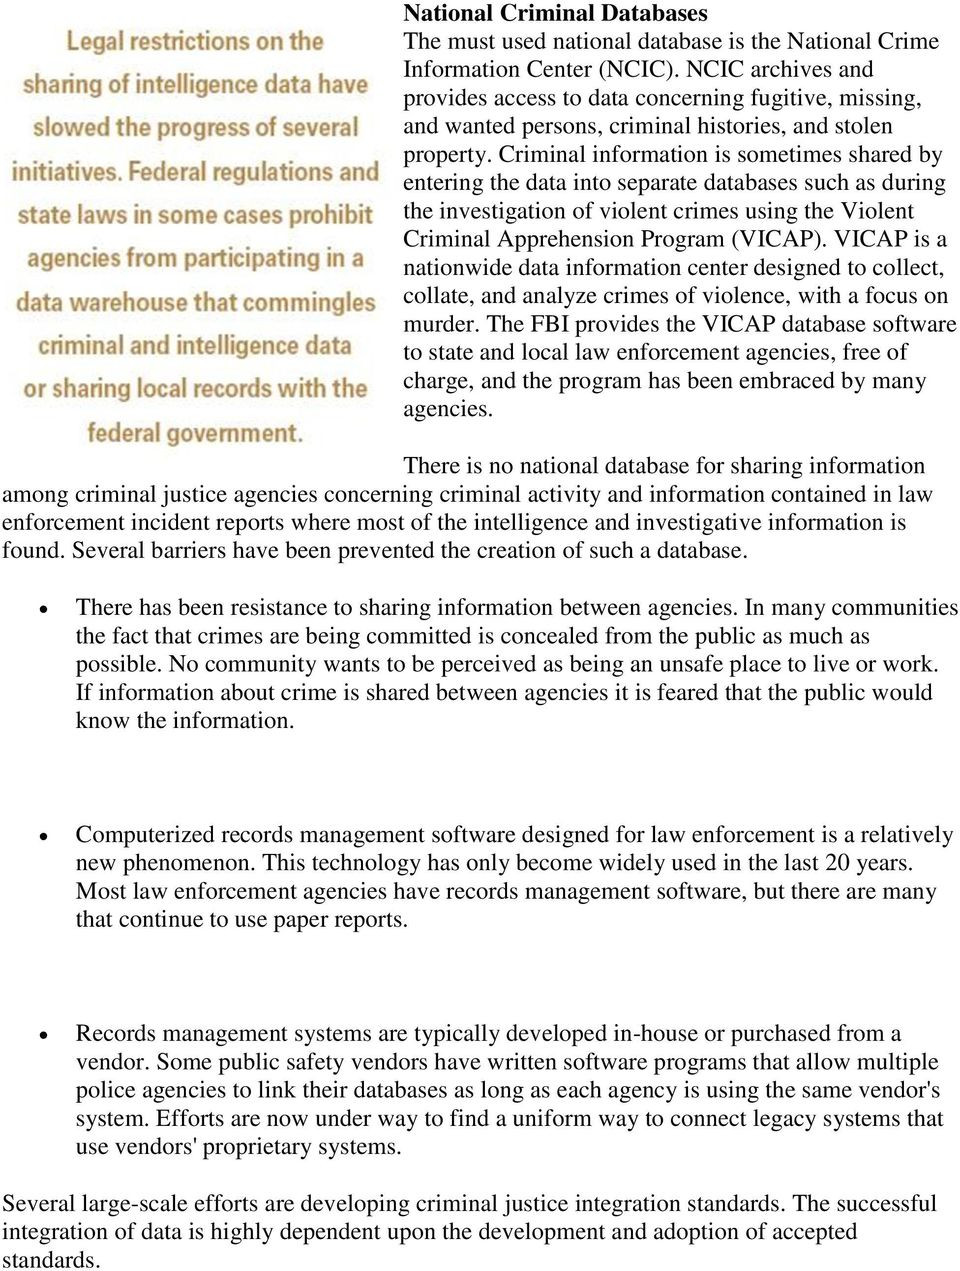 Criminal information is sometimes shared by entering the data into separate databases such as during the investigation of violent crimes using the Violent Criminal Apprehension Program (VICAP).